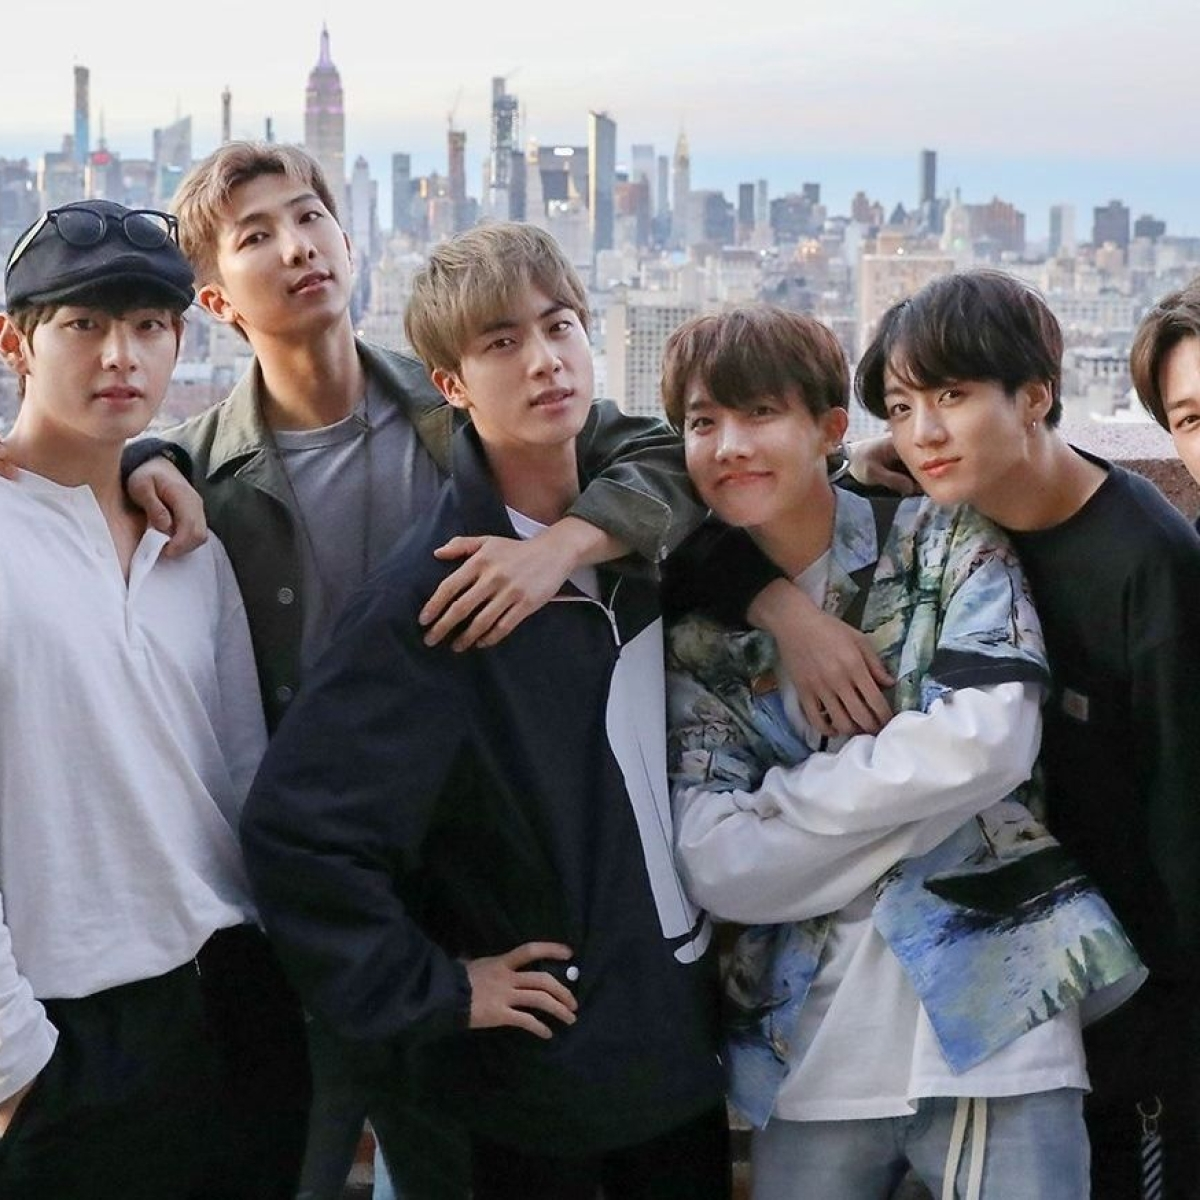 In less than 12 hours, BTS ARMY raises nearly Rs 10 lakh for COVID-19 relief in India